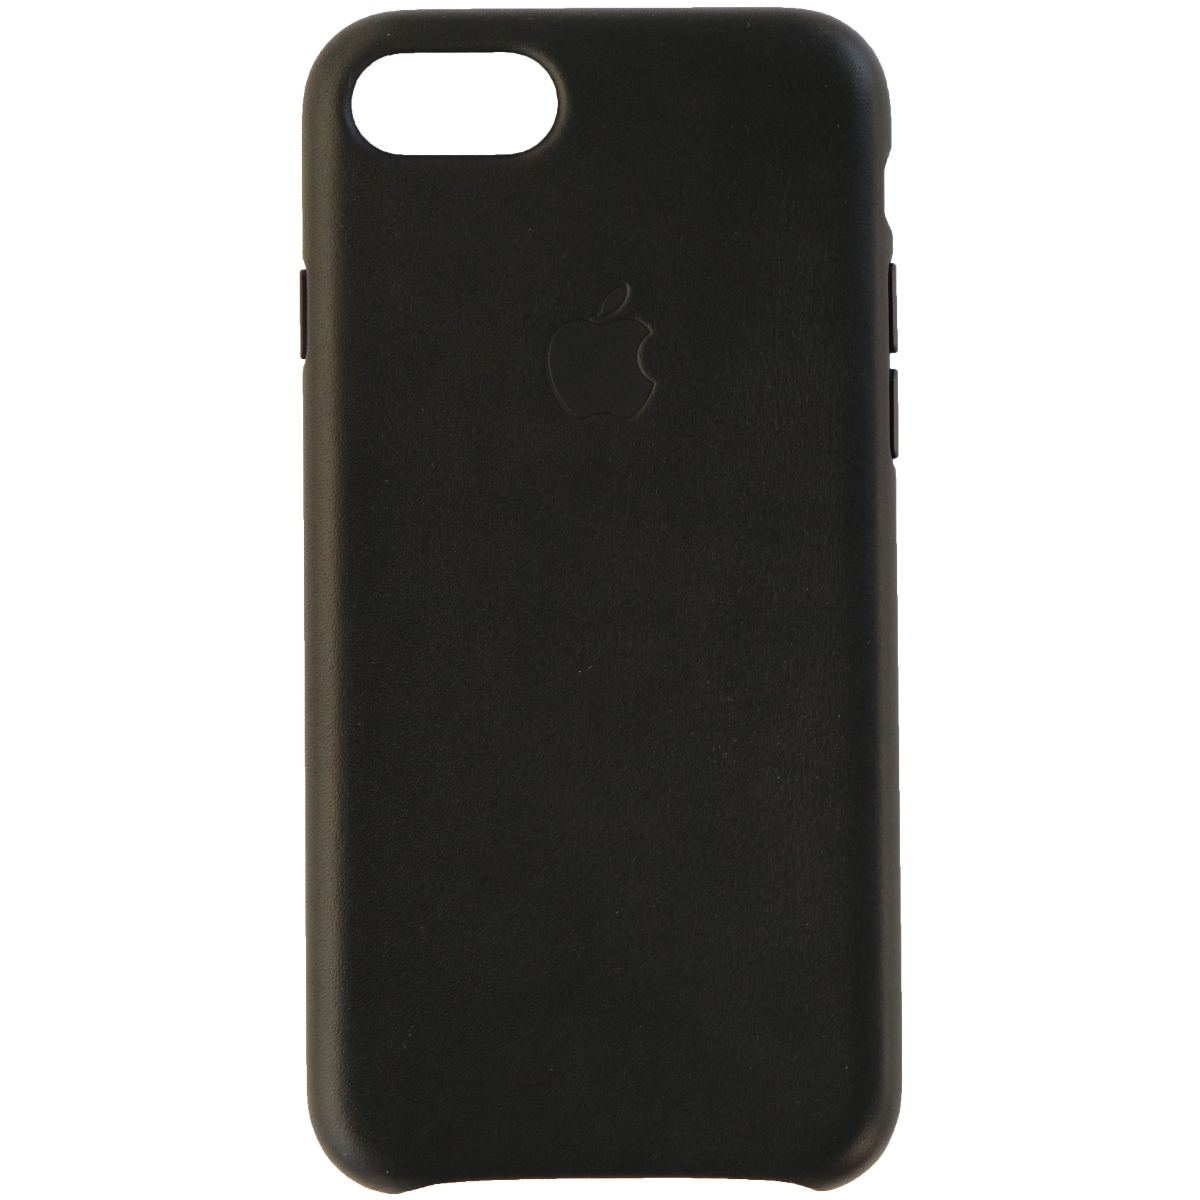 Apple Leather Case Cover for iPhone 8 and 7 - Black Leather MQH92ZM/A